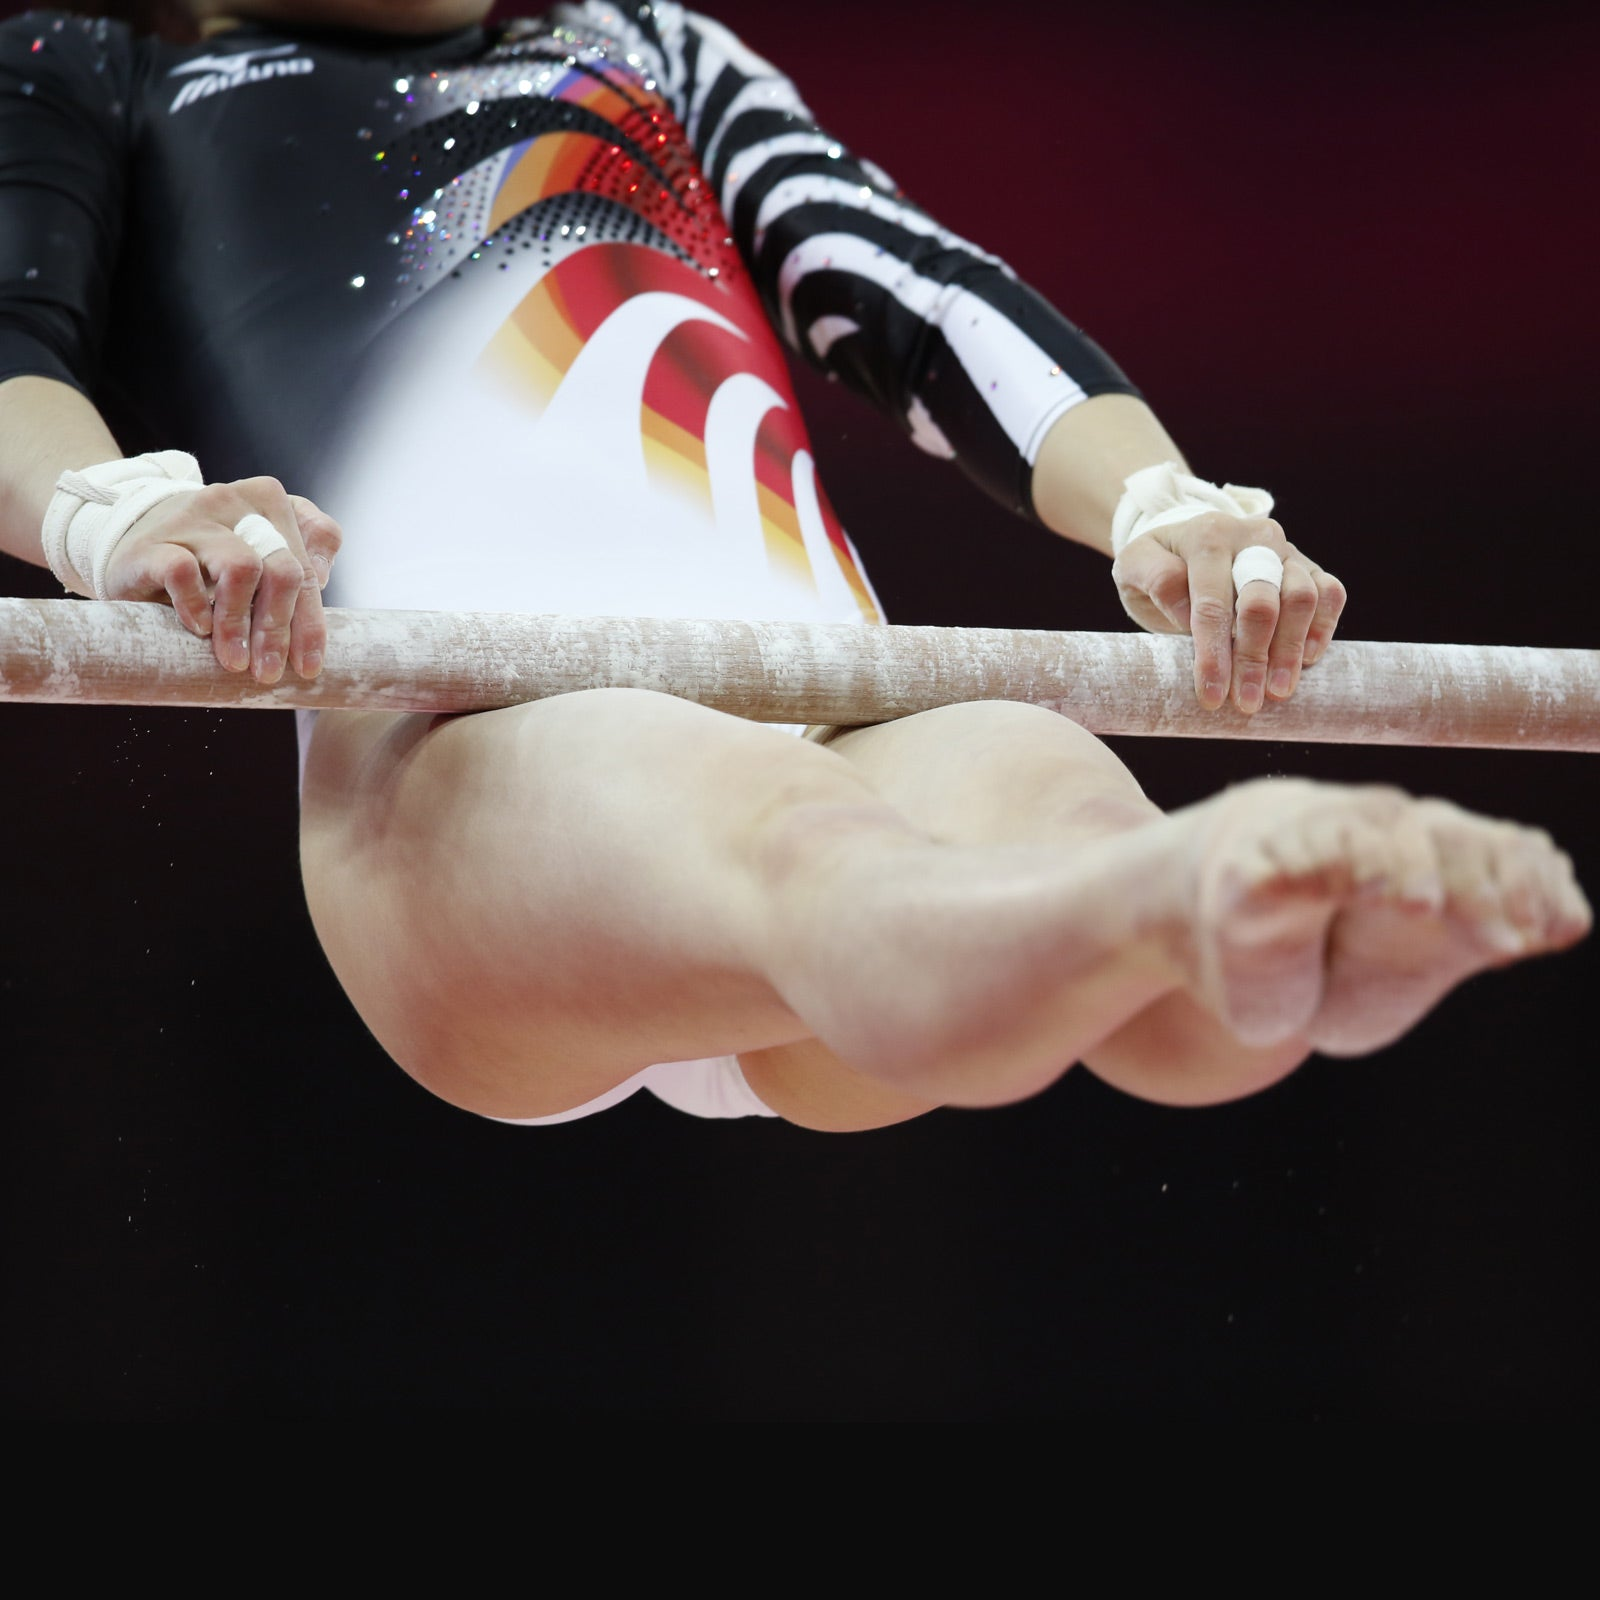 female gymnast performing toes to bar exercise